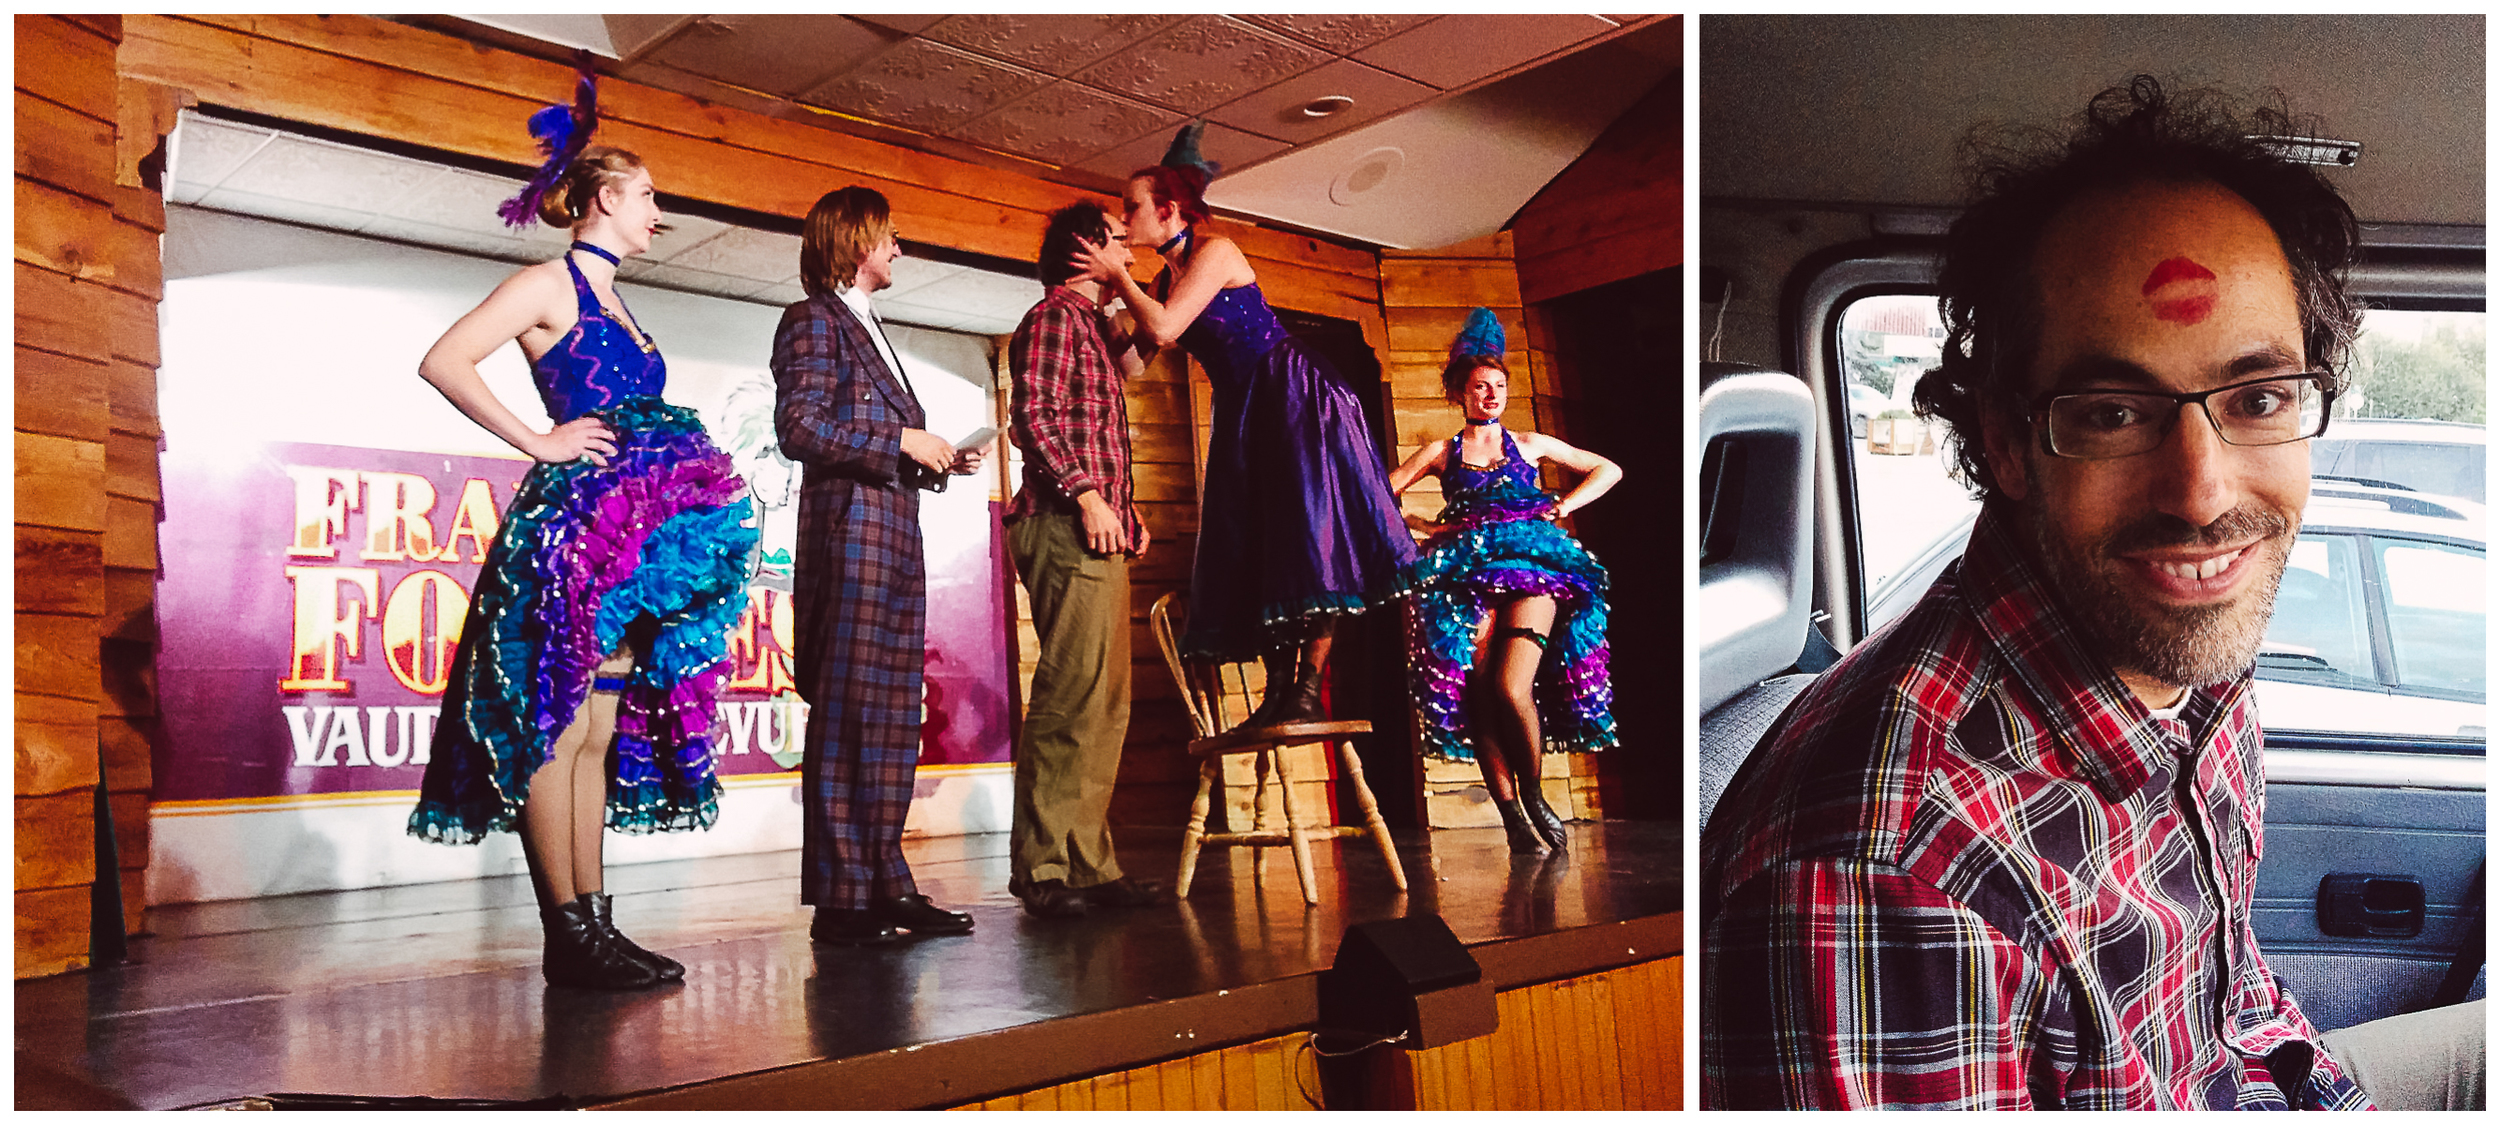 We brought the girls to see the Vaudeville revue show The Frantic Follies and we all had a blast! You should have heard them roar when JF got picked to go on the stage and won the best garter watcher title! What a night!